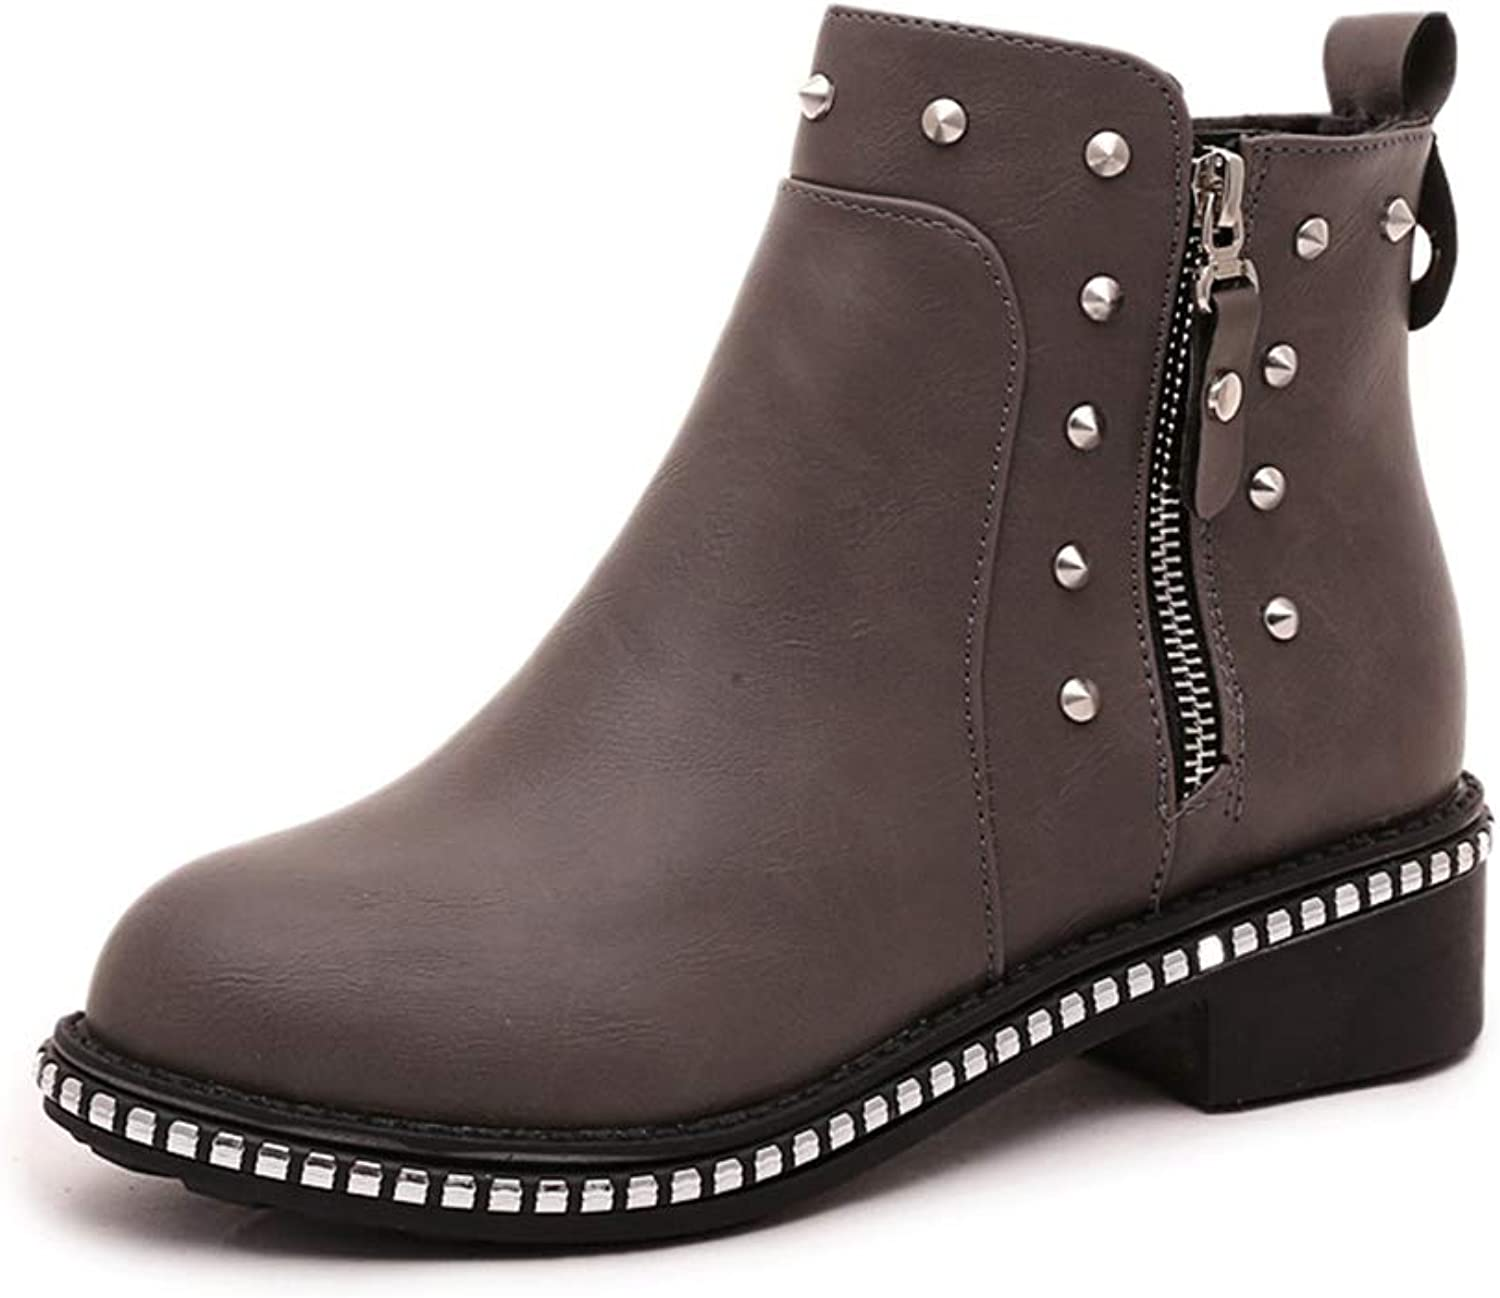 A-LING Women's Side Zipper Round Head Martin Boots Low Tube shoes